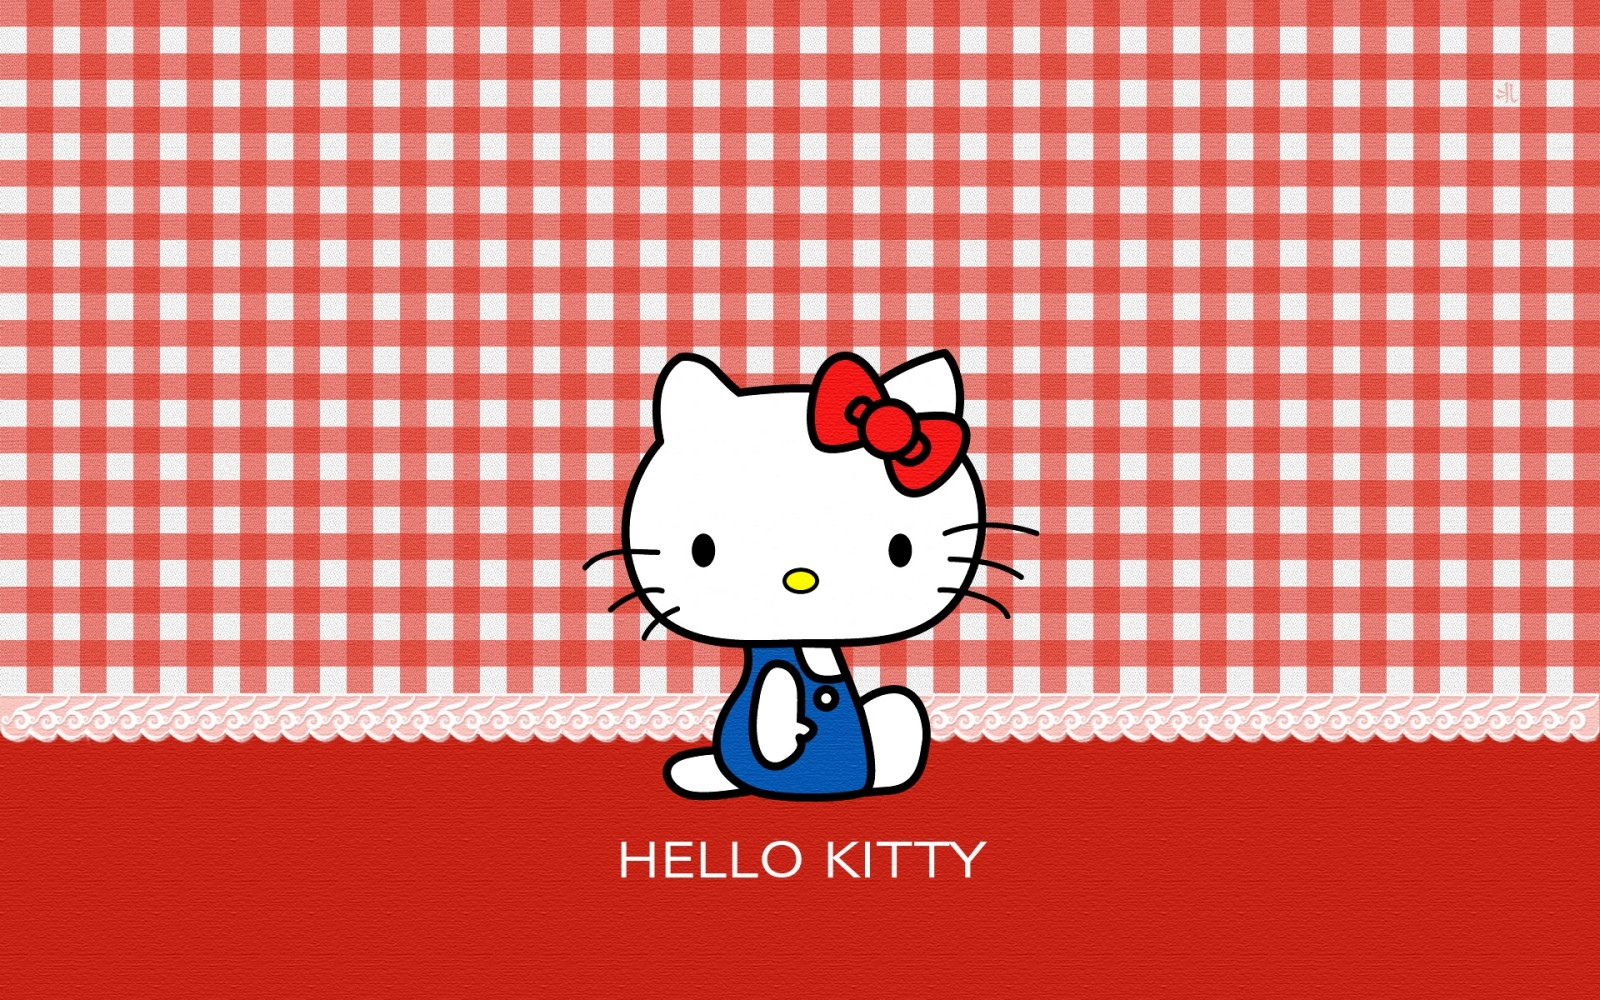 Most Inspiring Wallpaper Hello Kitty Lenovo - h41  Trends_83905.jpg